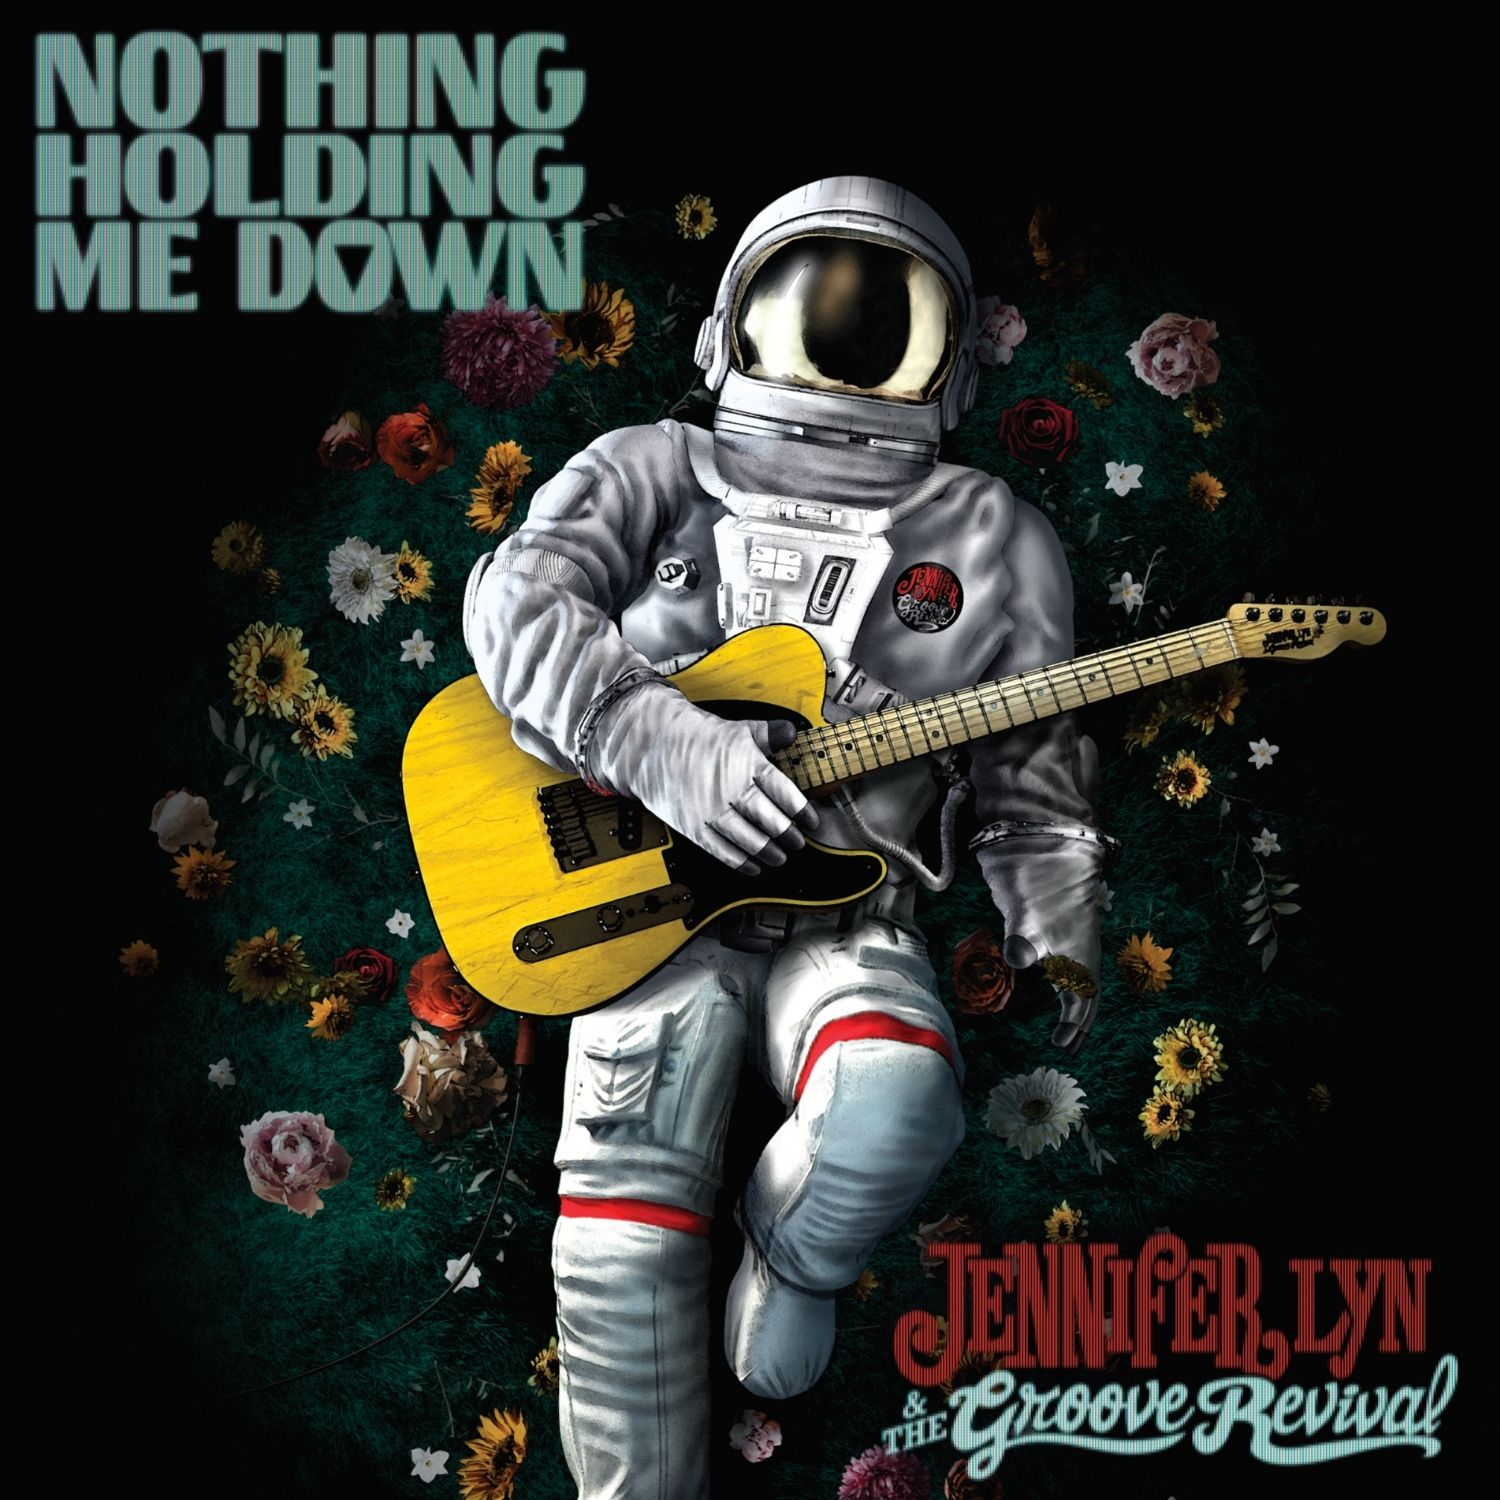 Nothing Holding Me Down by Jennifer Lyn & The Groove Revival